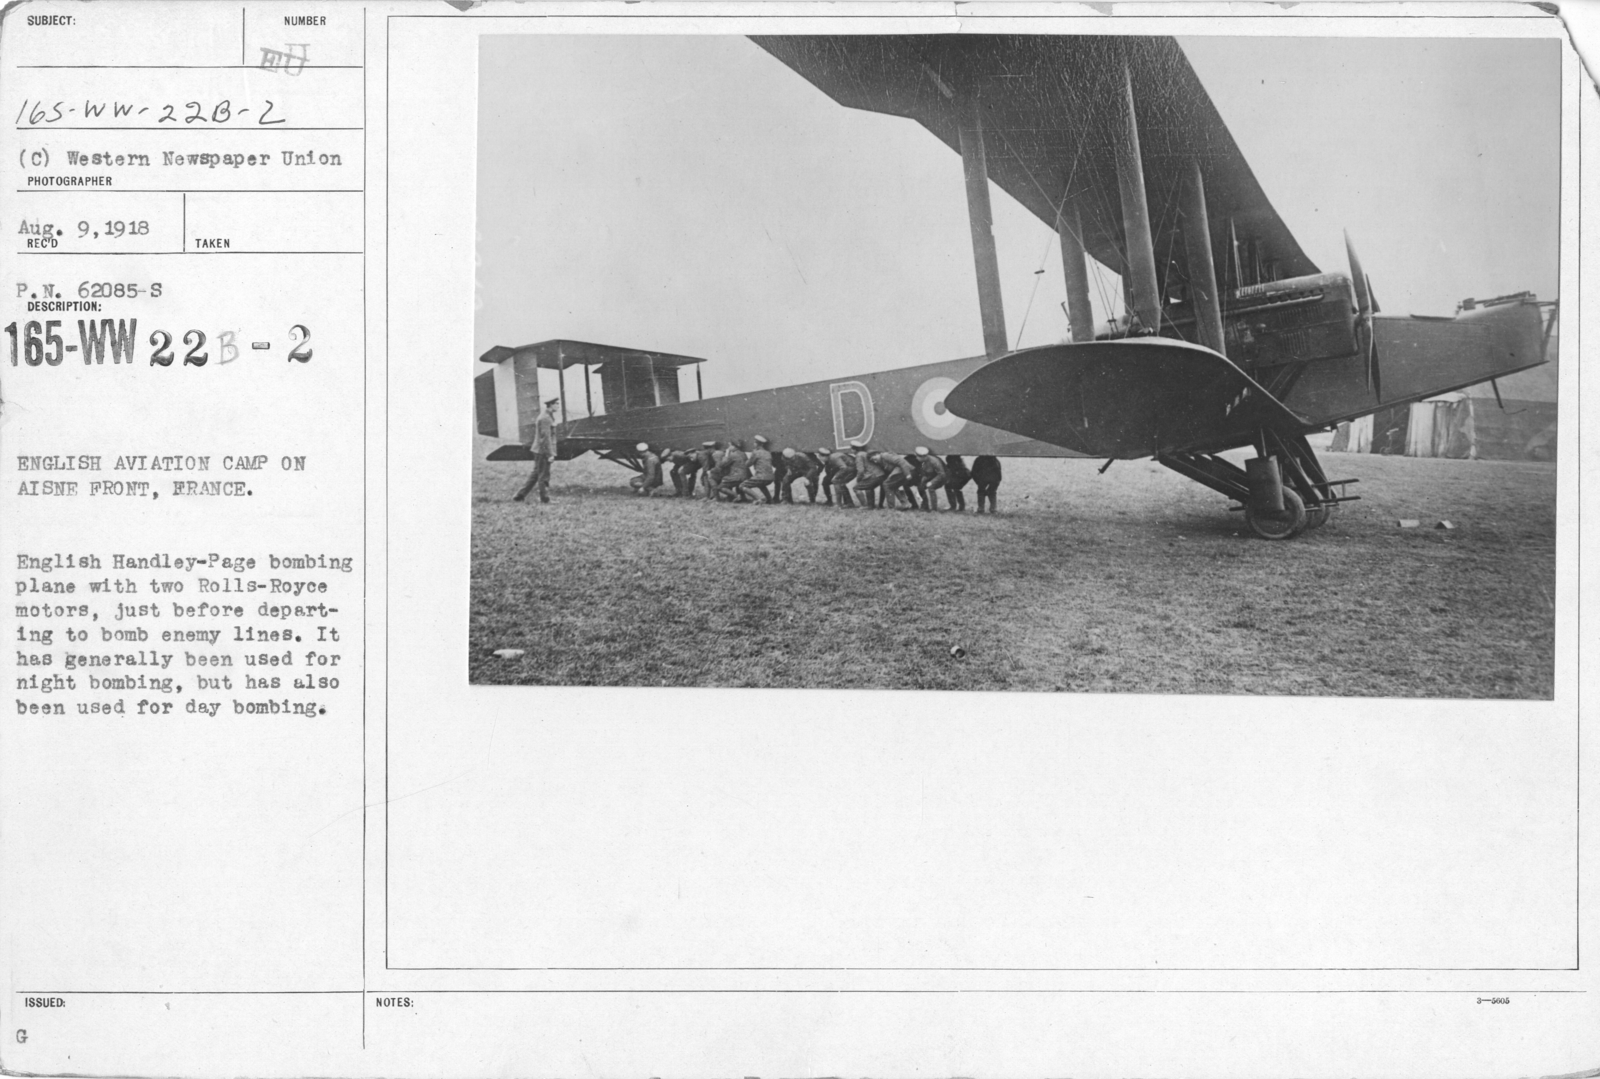 Airplanes - Types - English Aviation Camp on Aisne Front, France. English Handley-Page bombing plane with two Rolls-Royce motors, just before departing to bomb enemy lines. It has generally been used for night bombing, but has also been used for day bombing